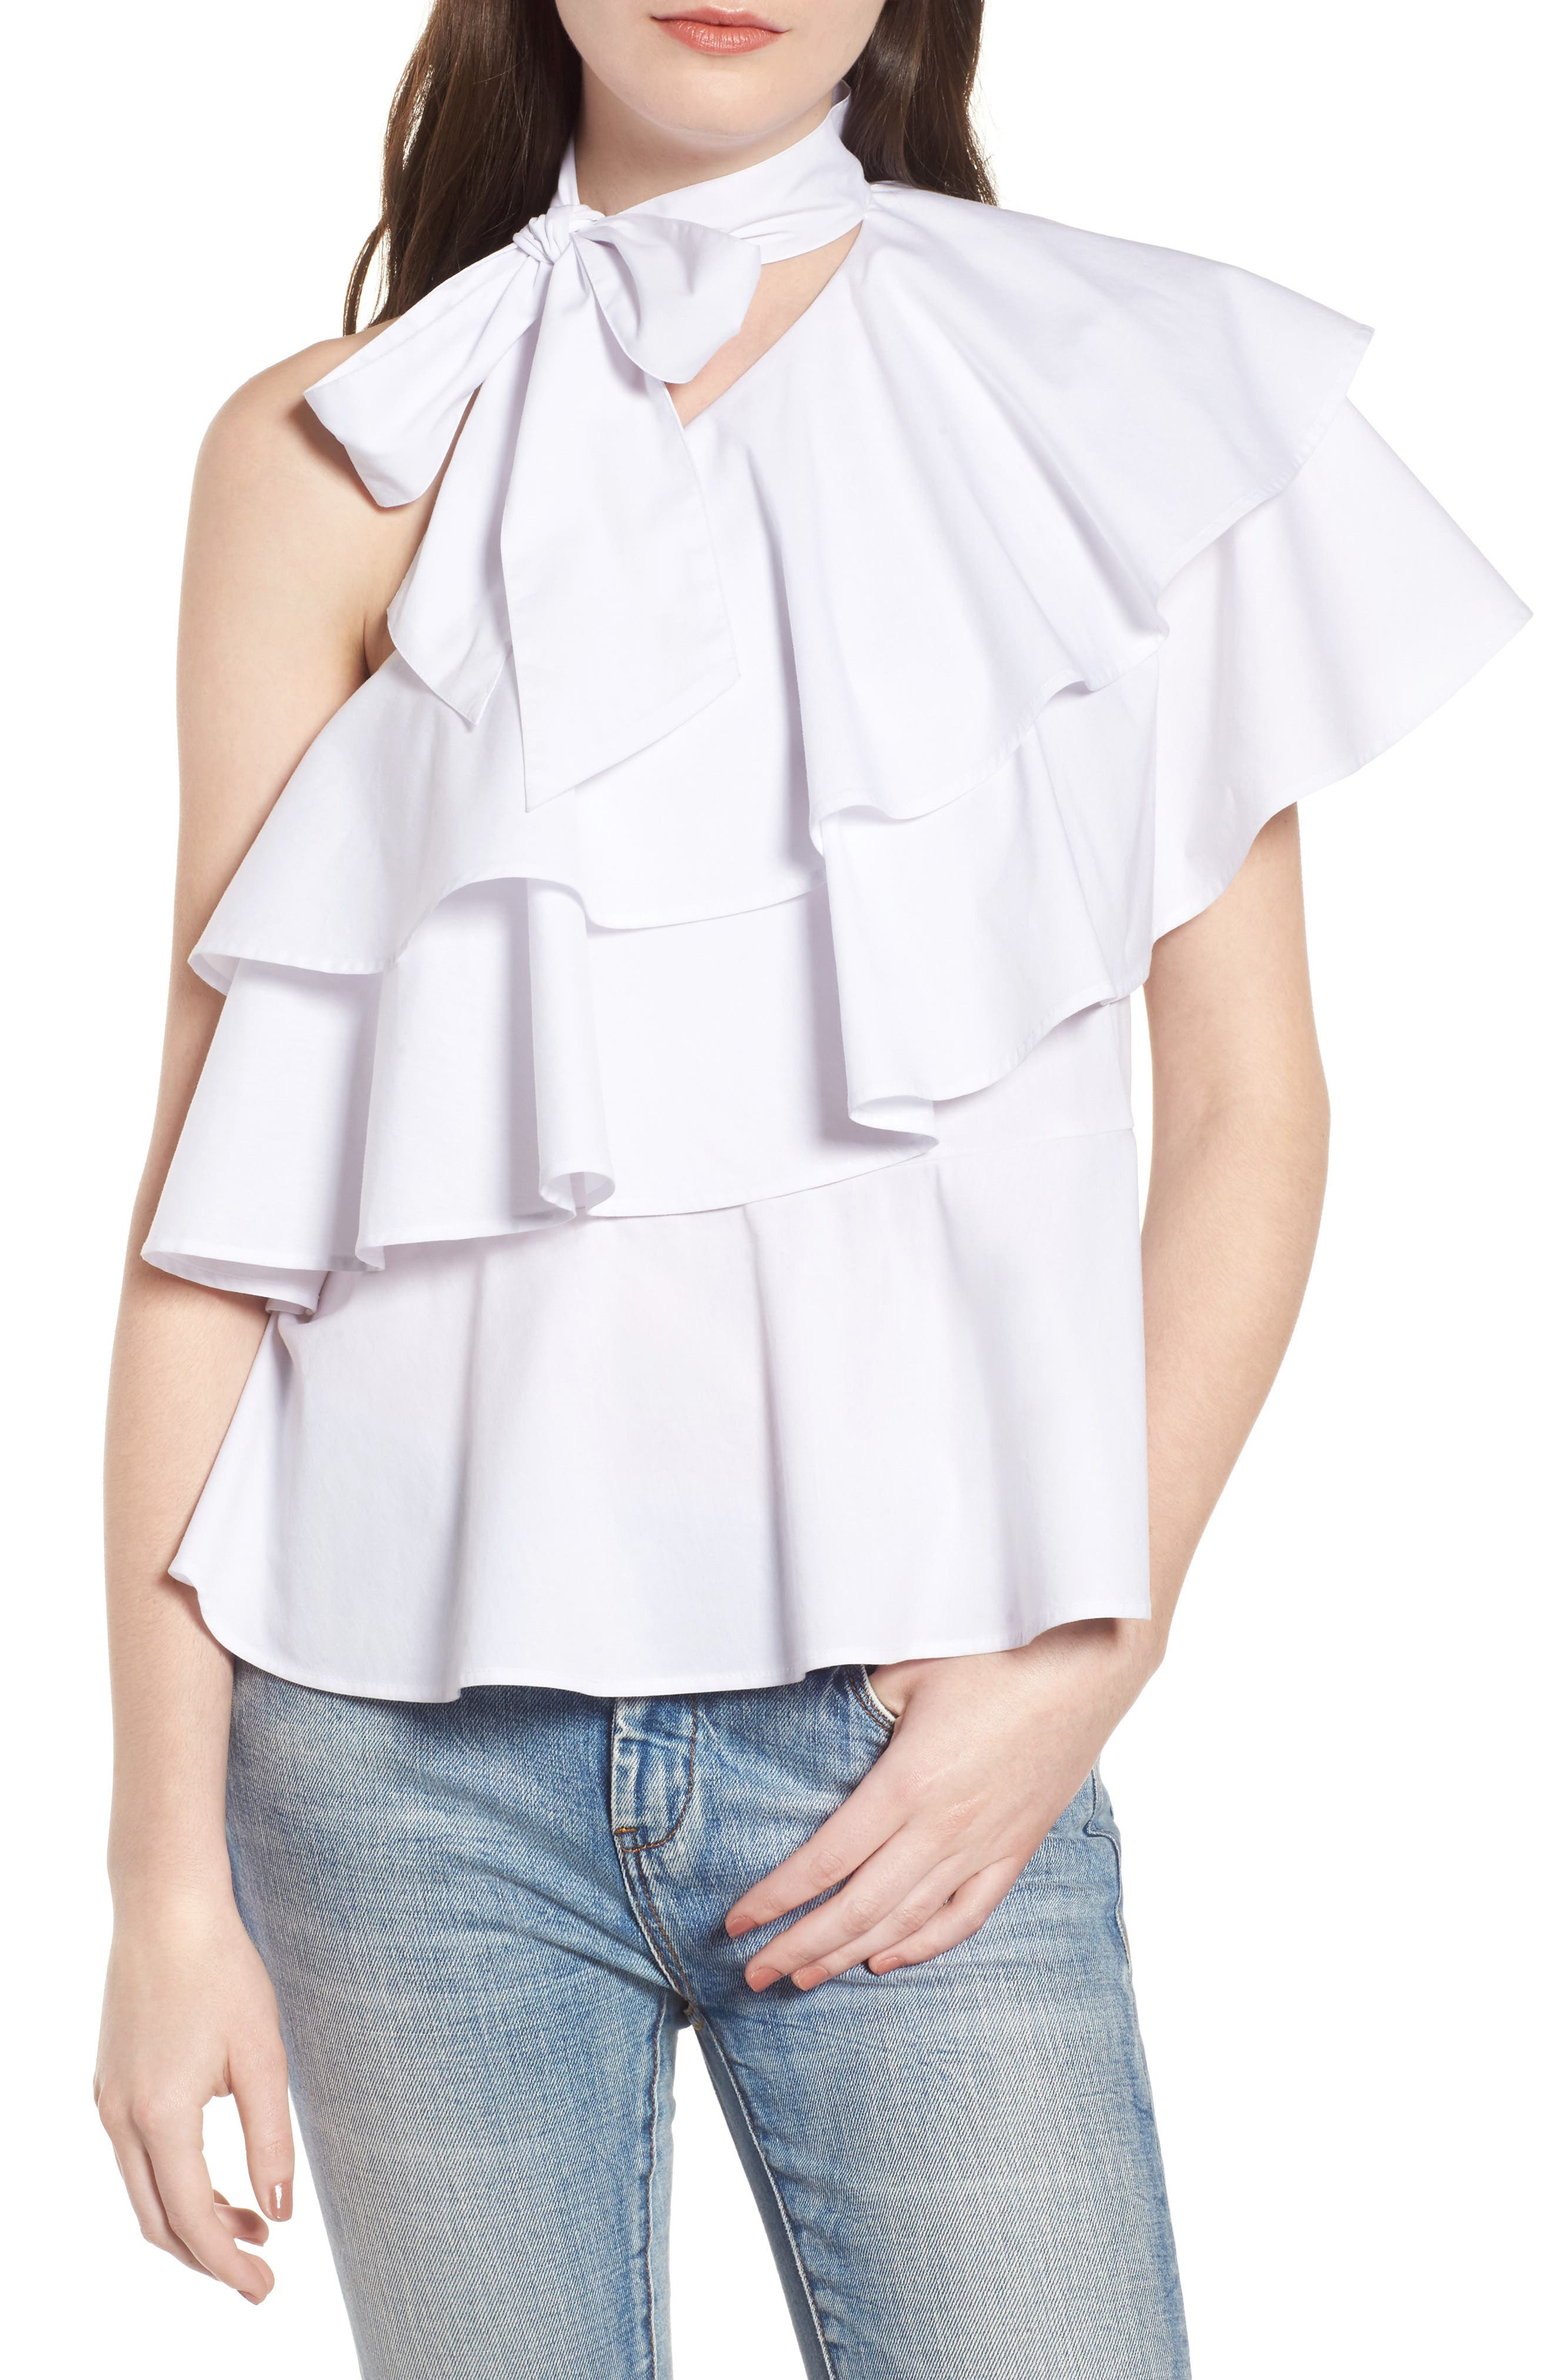 LEITH One-Shoulder Ruffle Top, Main, color, 100